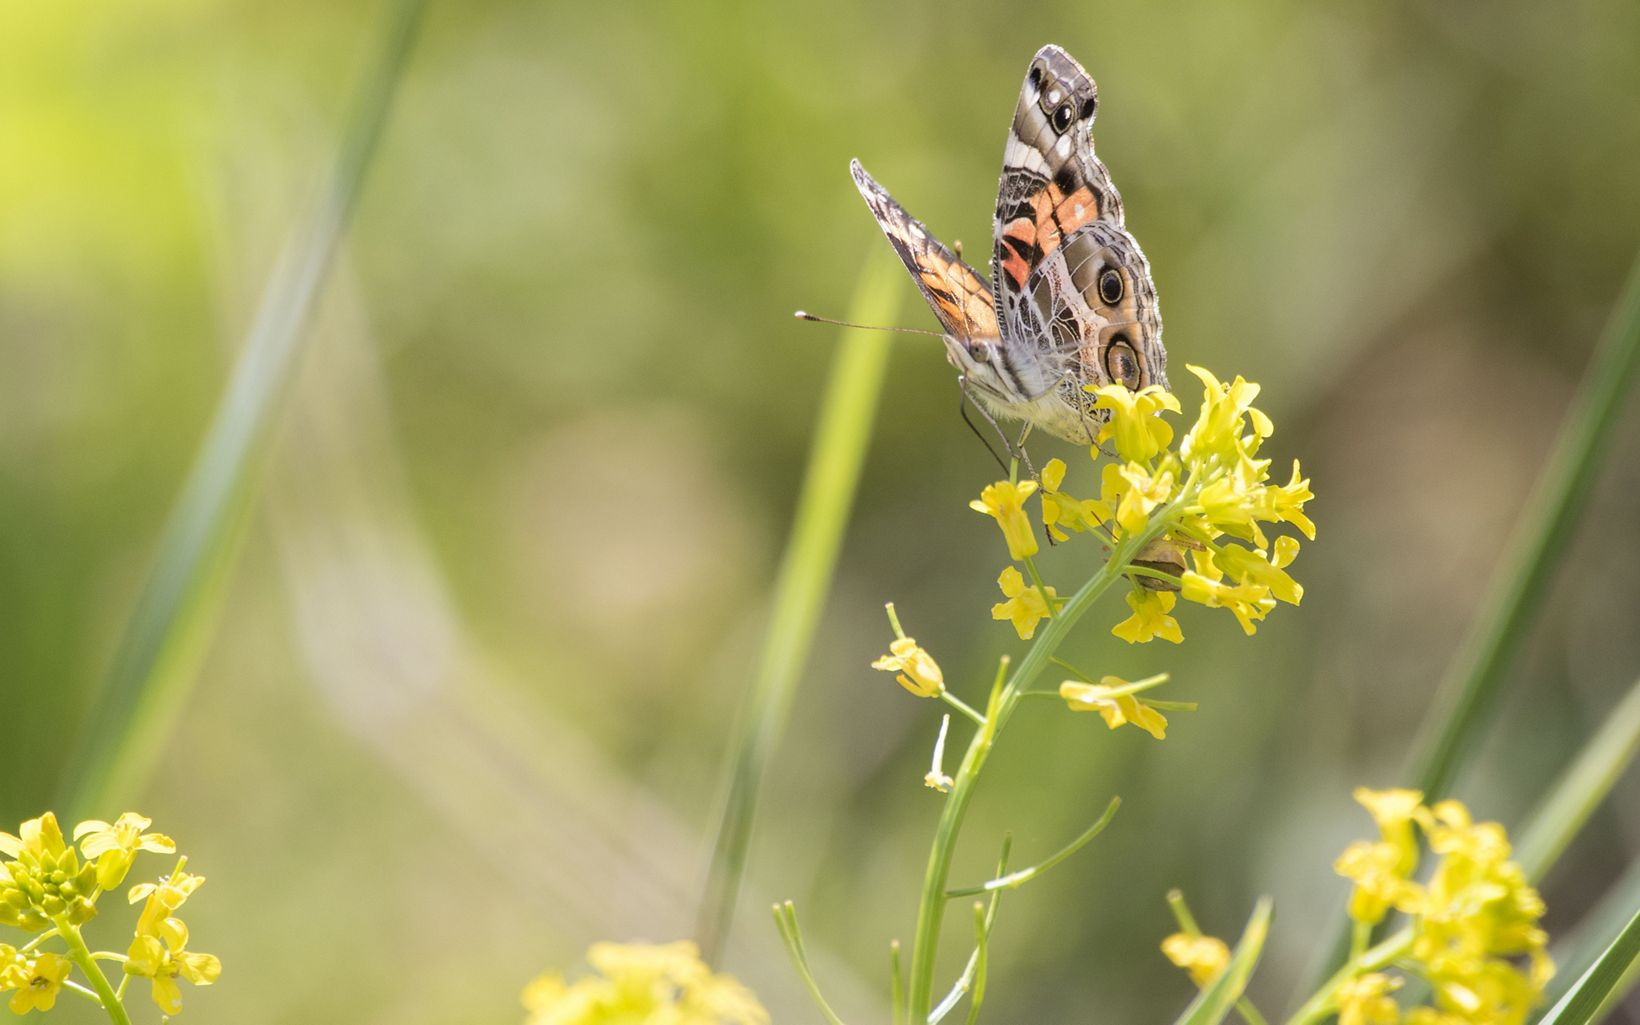 A gray, black and orange butterfly on bright yellow flowers.